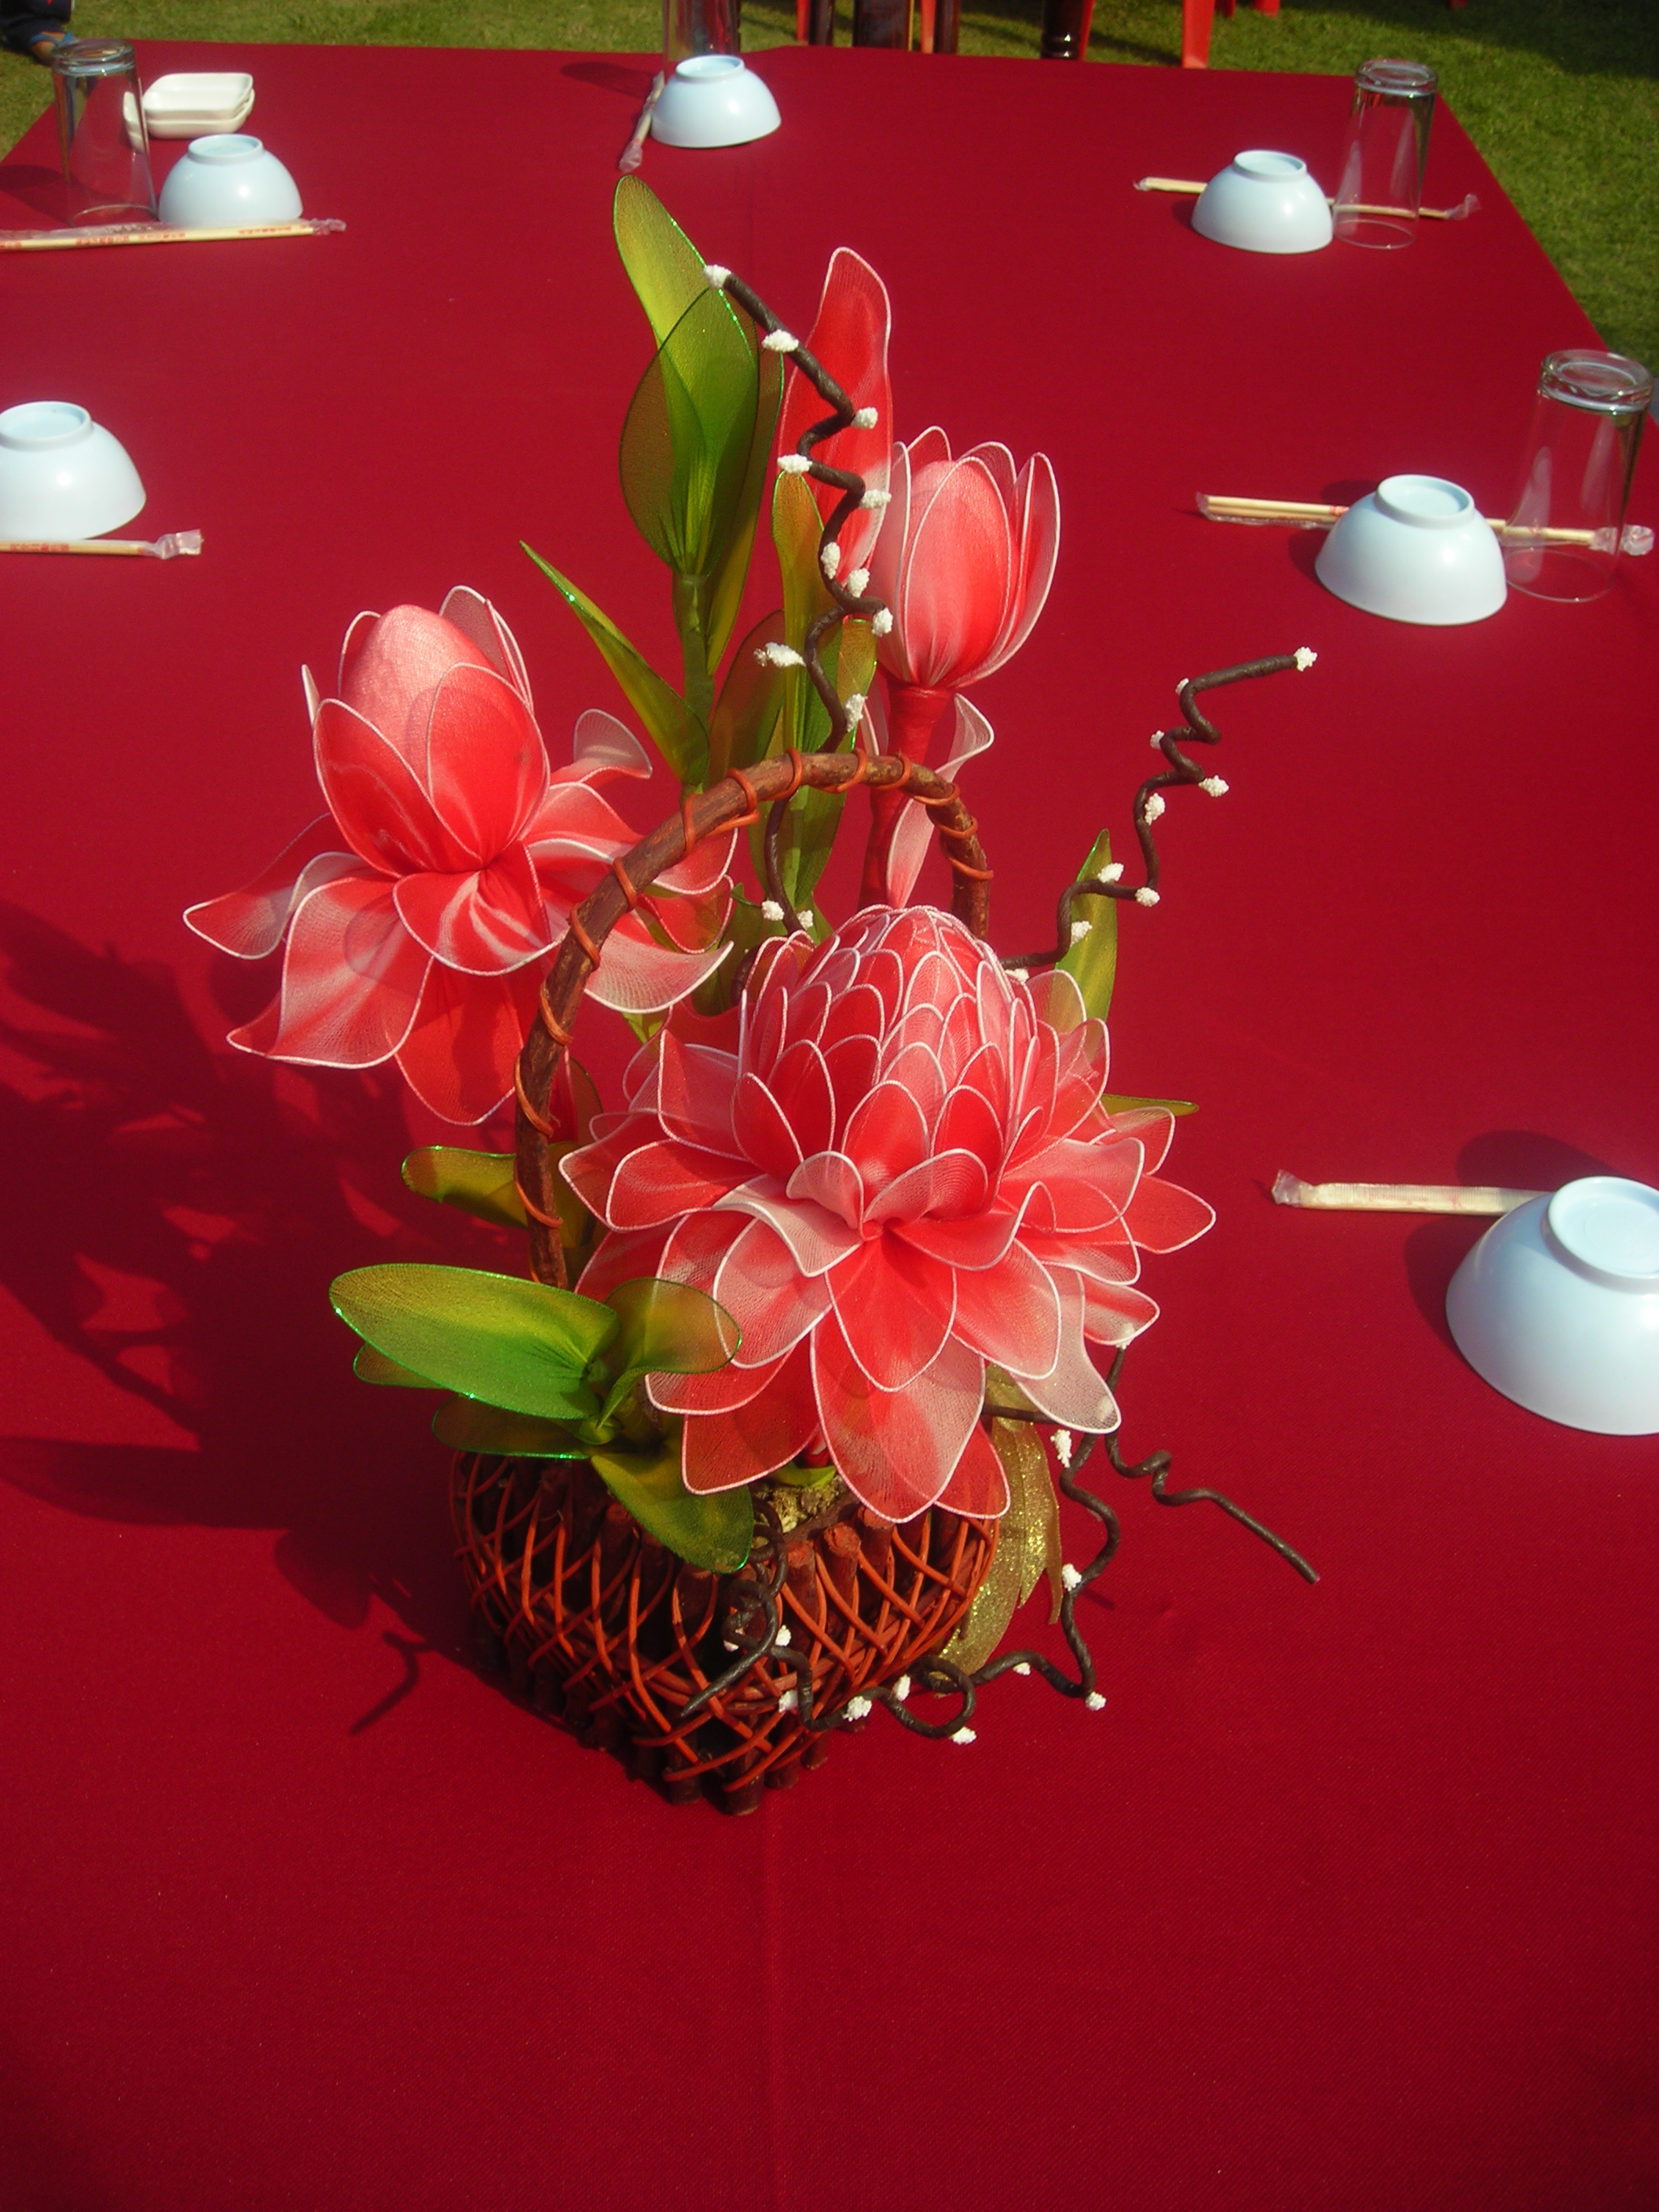 File:Red artificial flower as table decoration.JPG - Wikimedia Commons